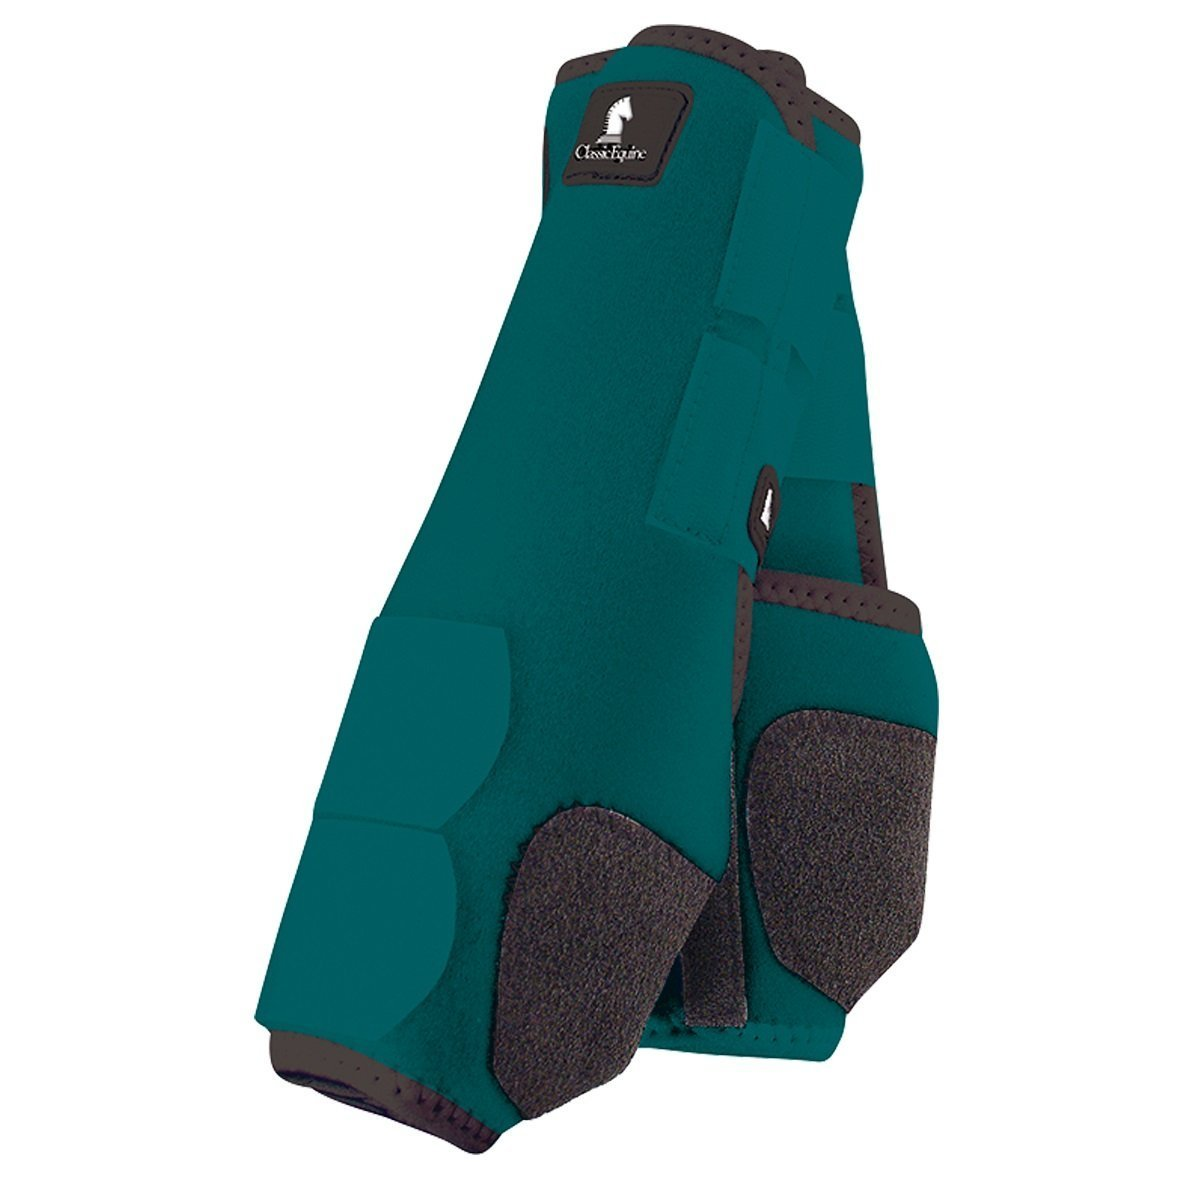 Classic Equine Legacy SMB Boots - HIND Colors (Teal, Medium)